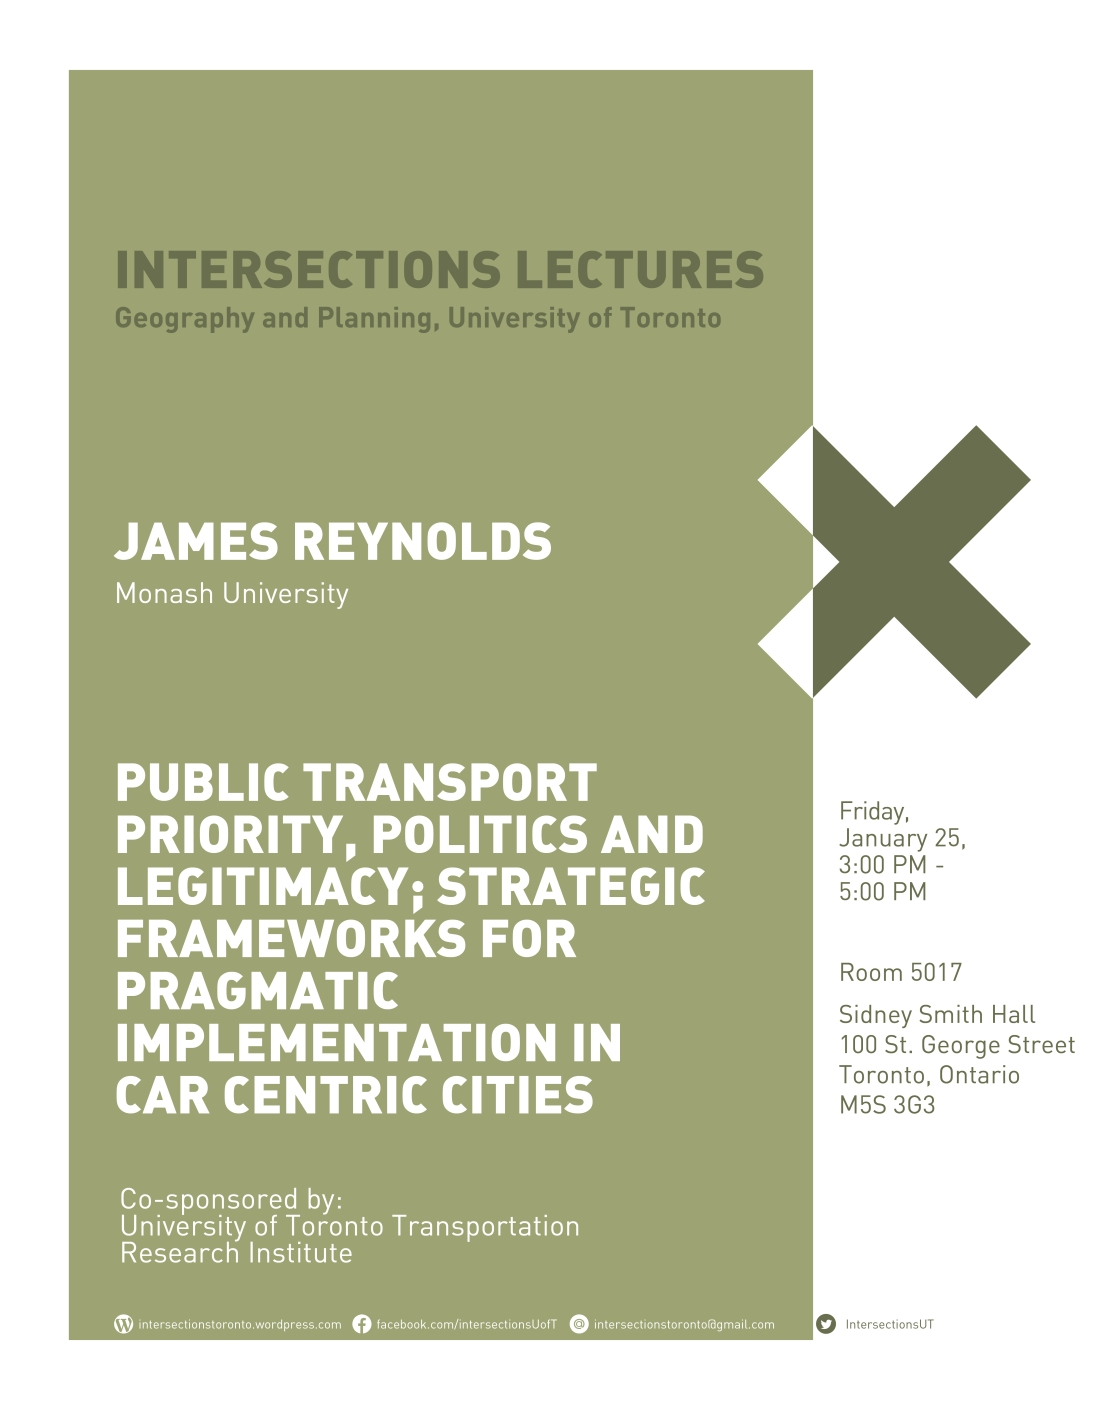 Intersections 2018-19 Posters_James Reynolds.jpg